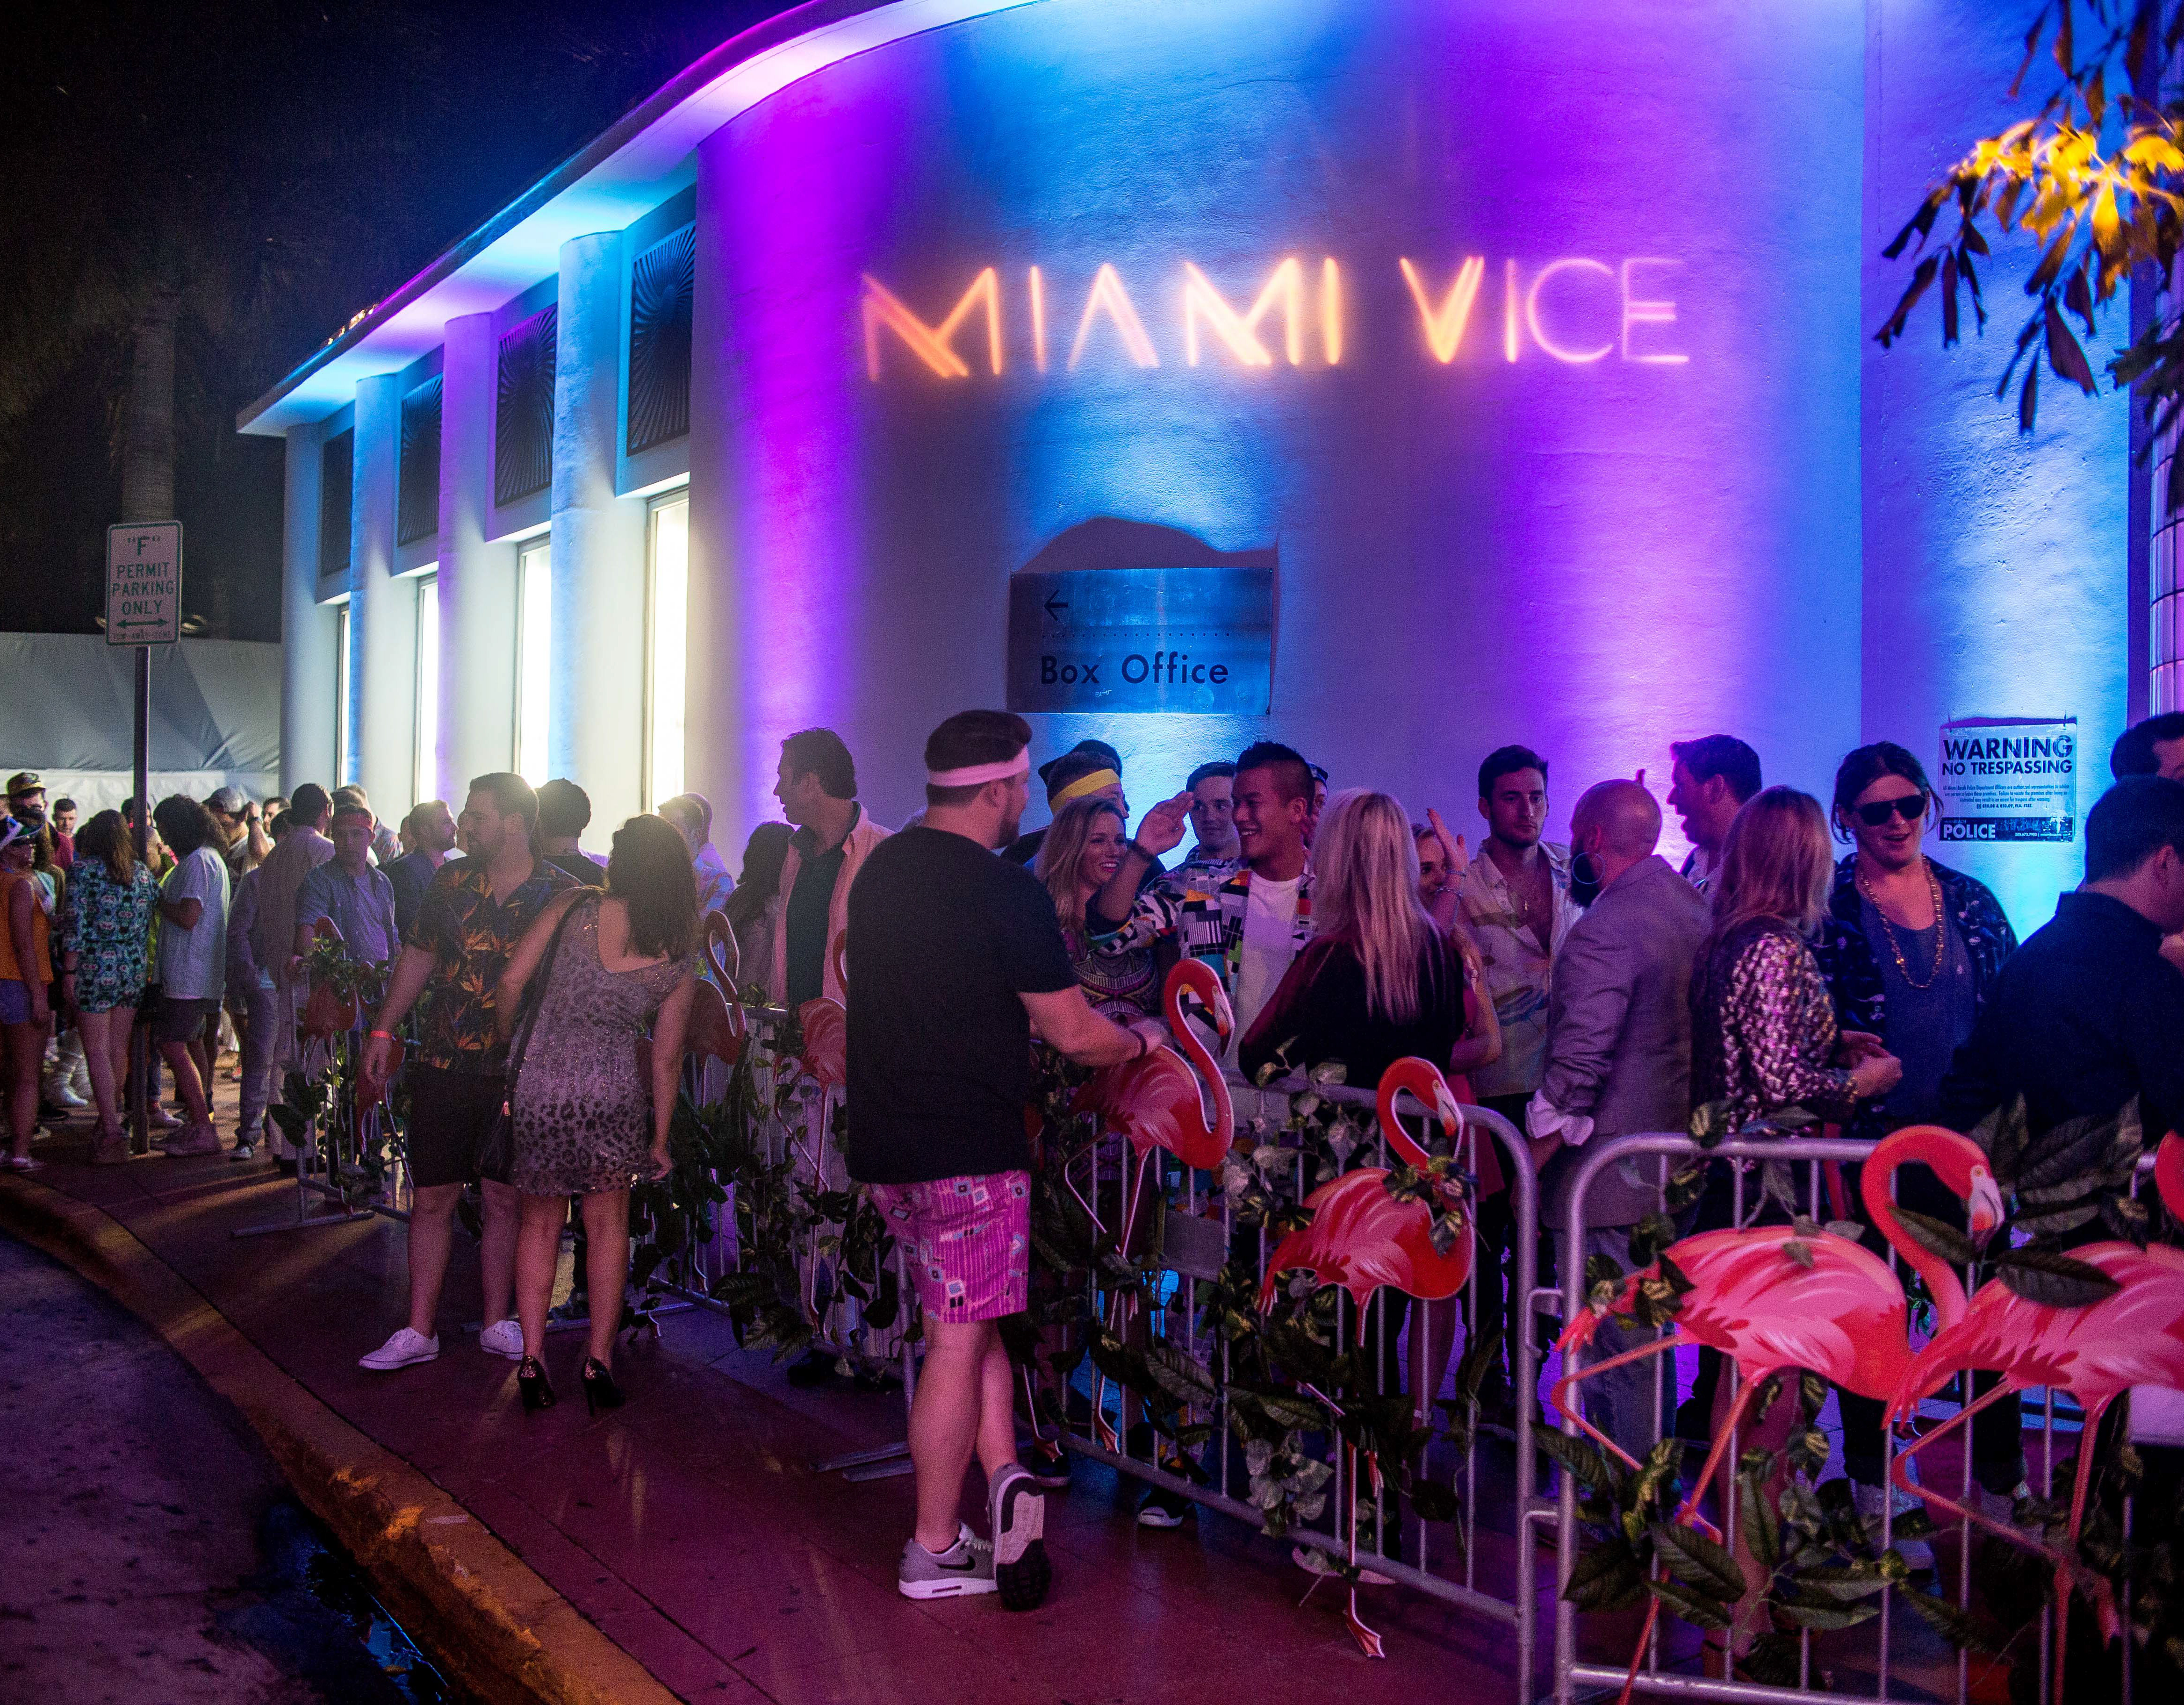 Citi Bike Miami >> Experiential Events, Brand Activation, 360º Campaigns, Digital & Print, Pop-Up Events, Culture ...